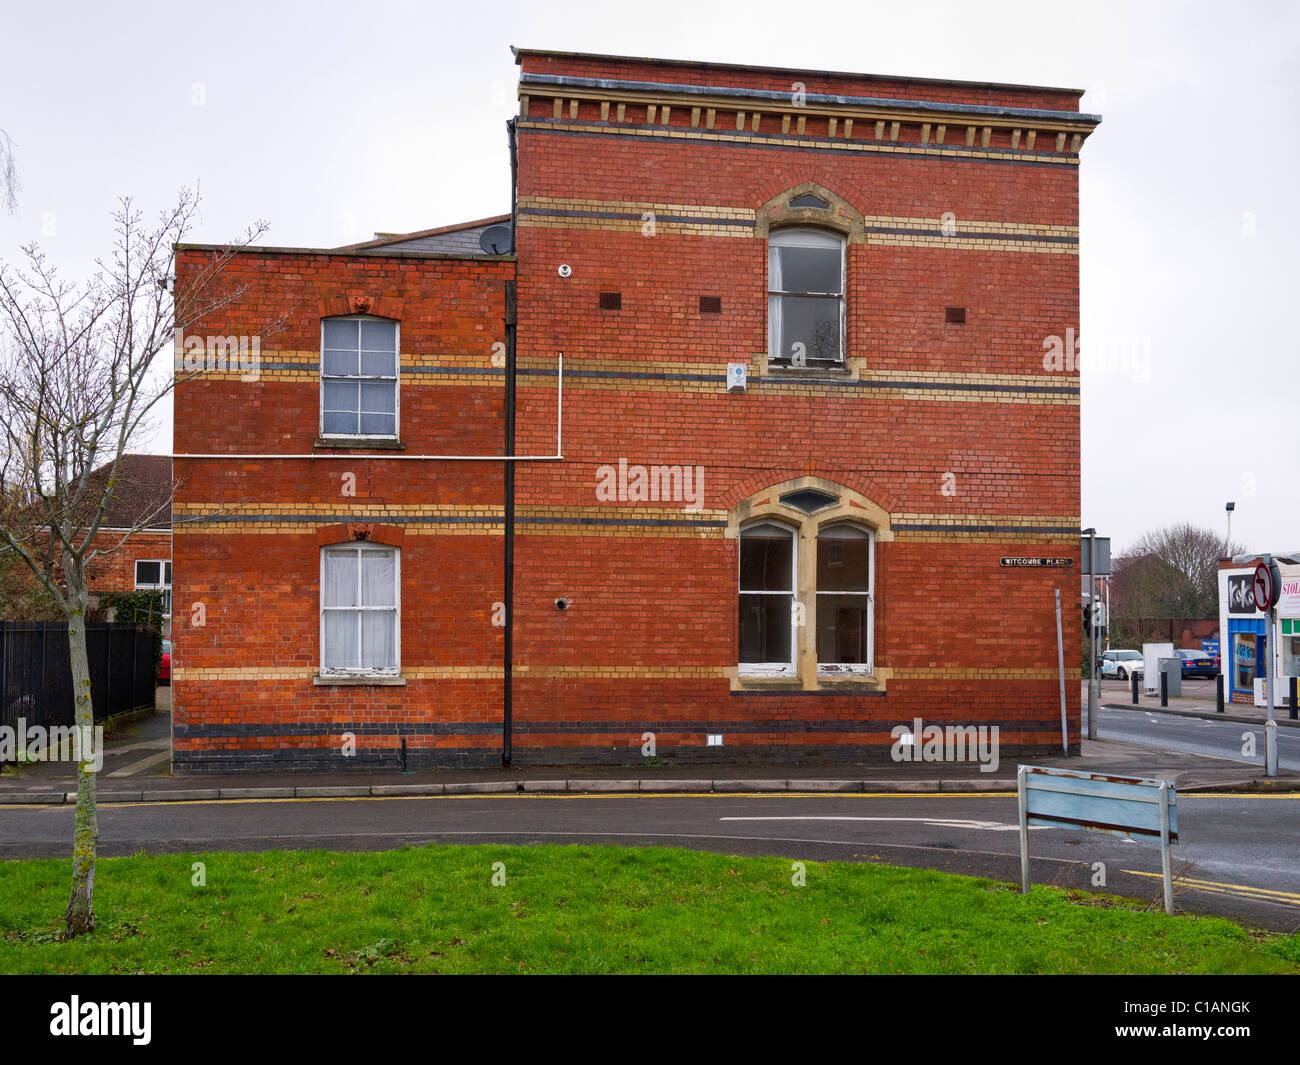 Side of a brick building, Mill House, in Albion Street, seen from Witcombe Place, Cheltenham, Gloucestershire, UK - Stock Image